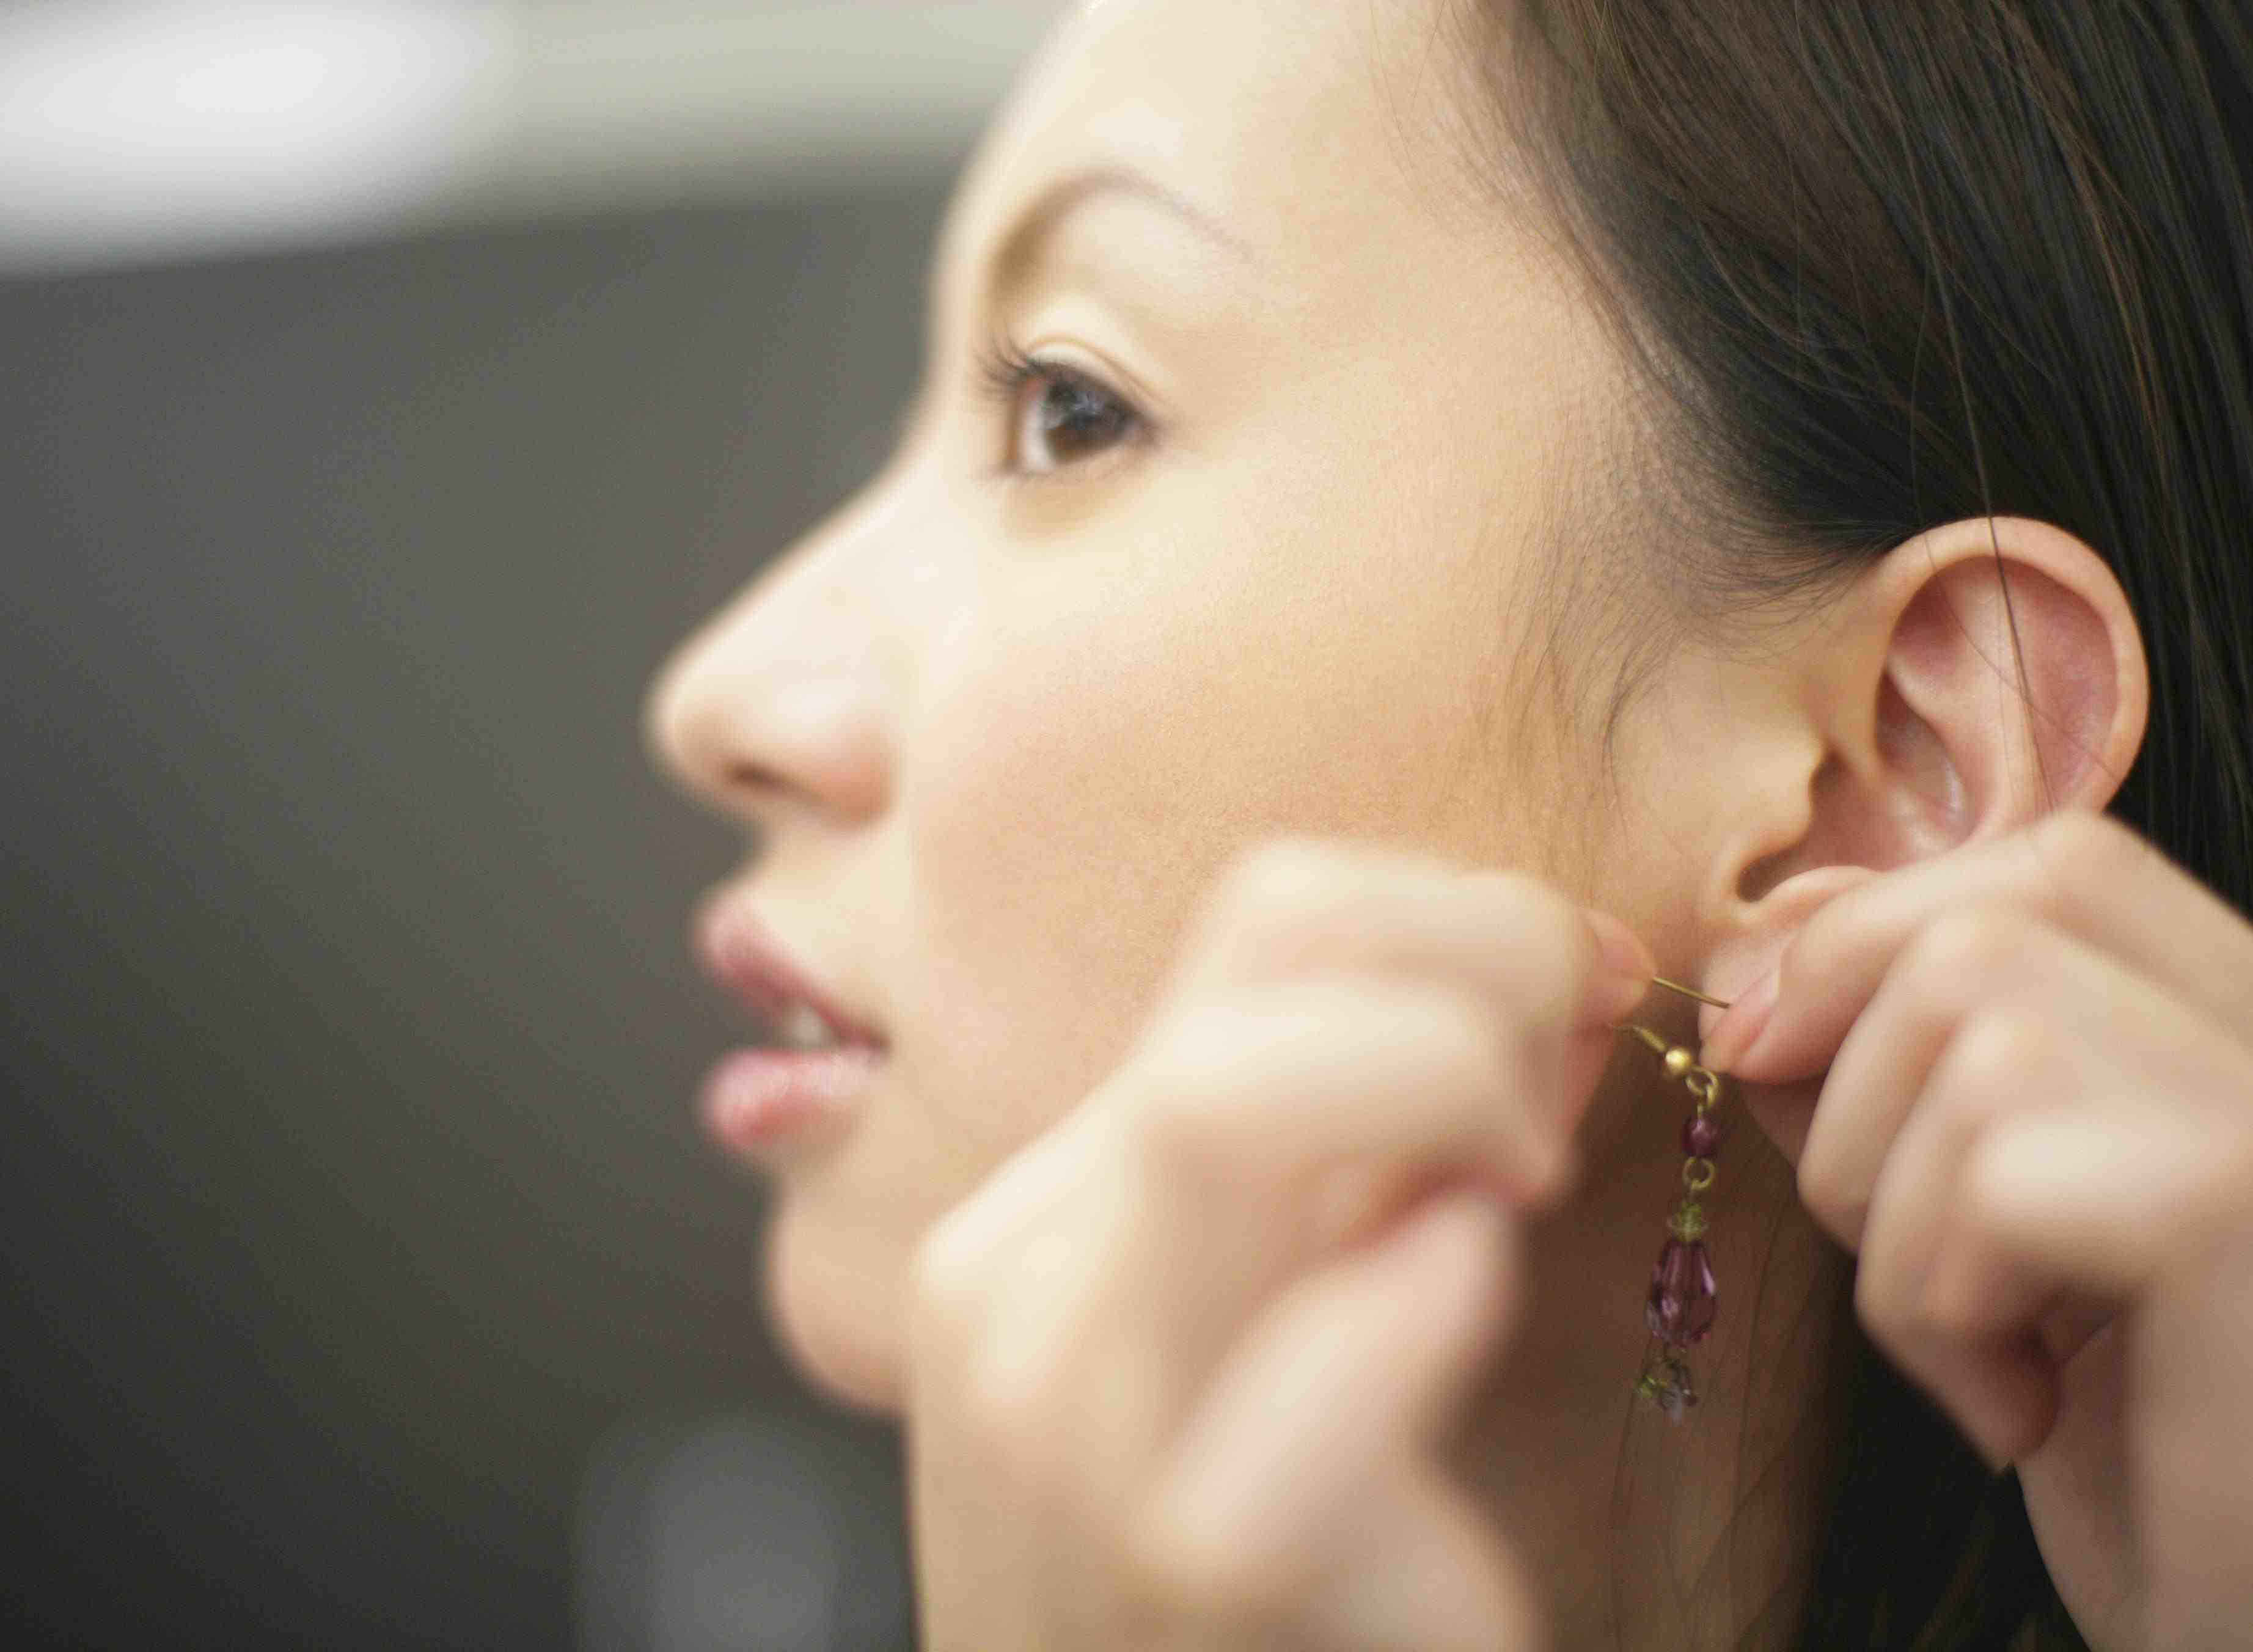 How To Keep Your Ears From Getting Infected From Earrings